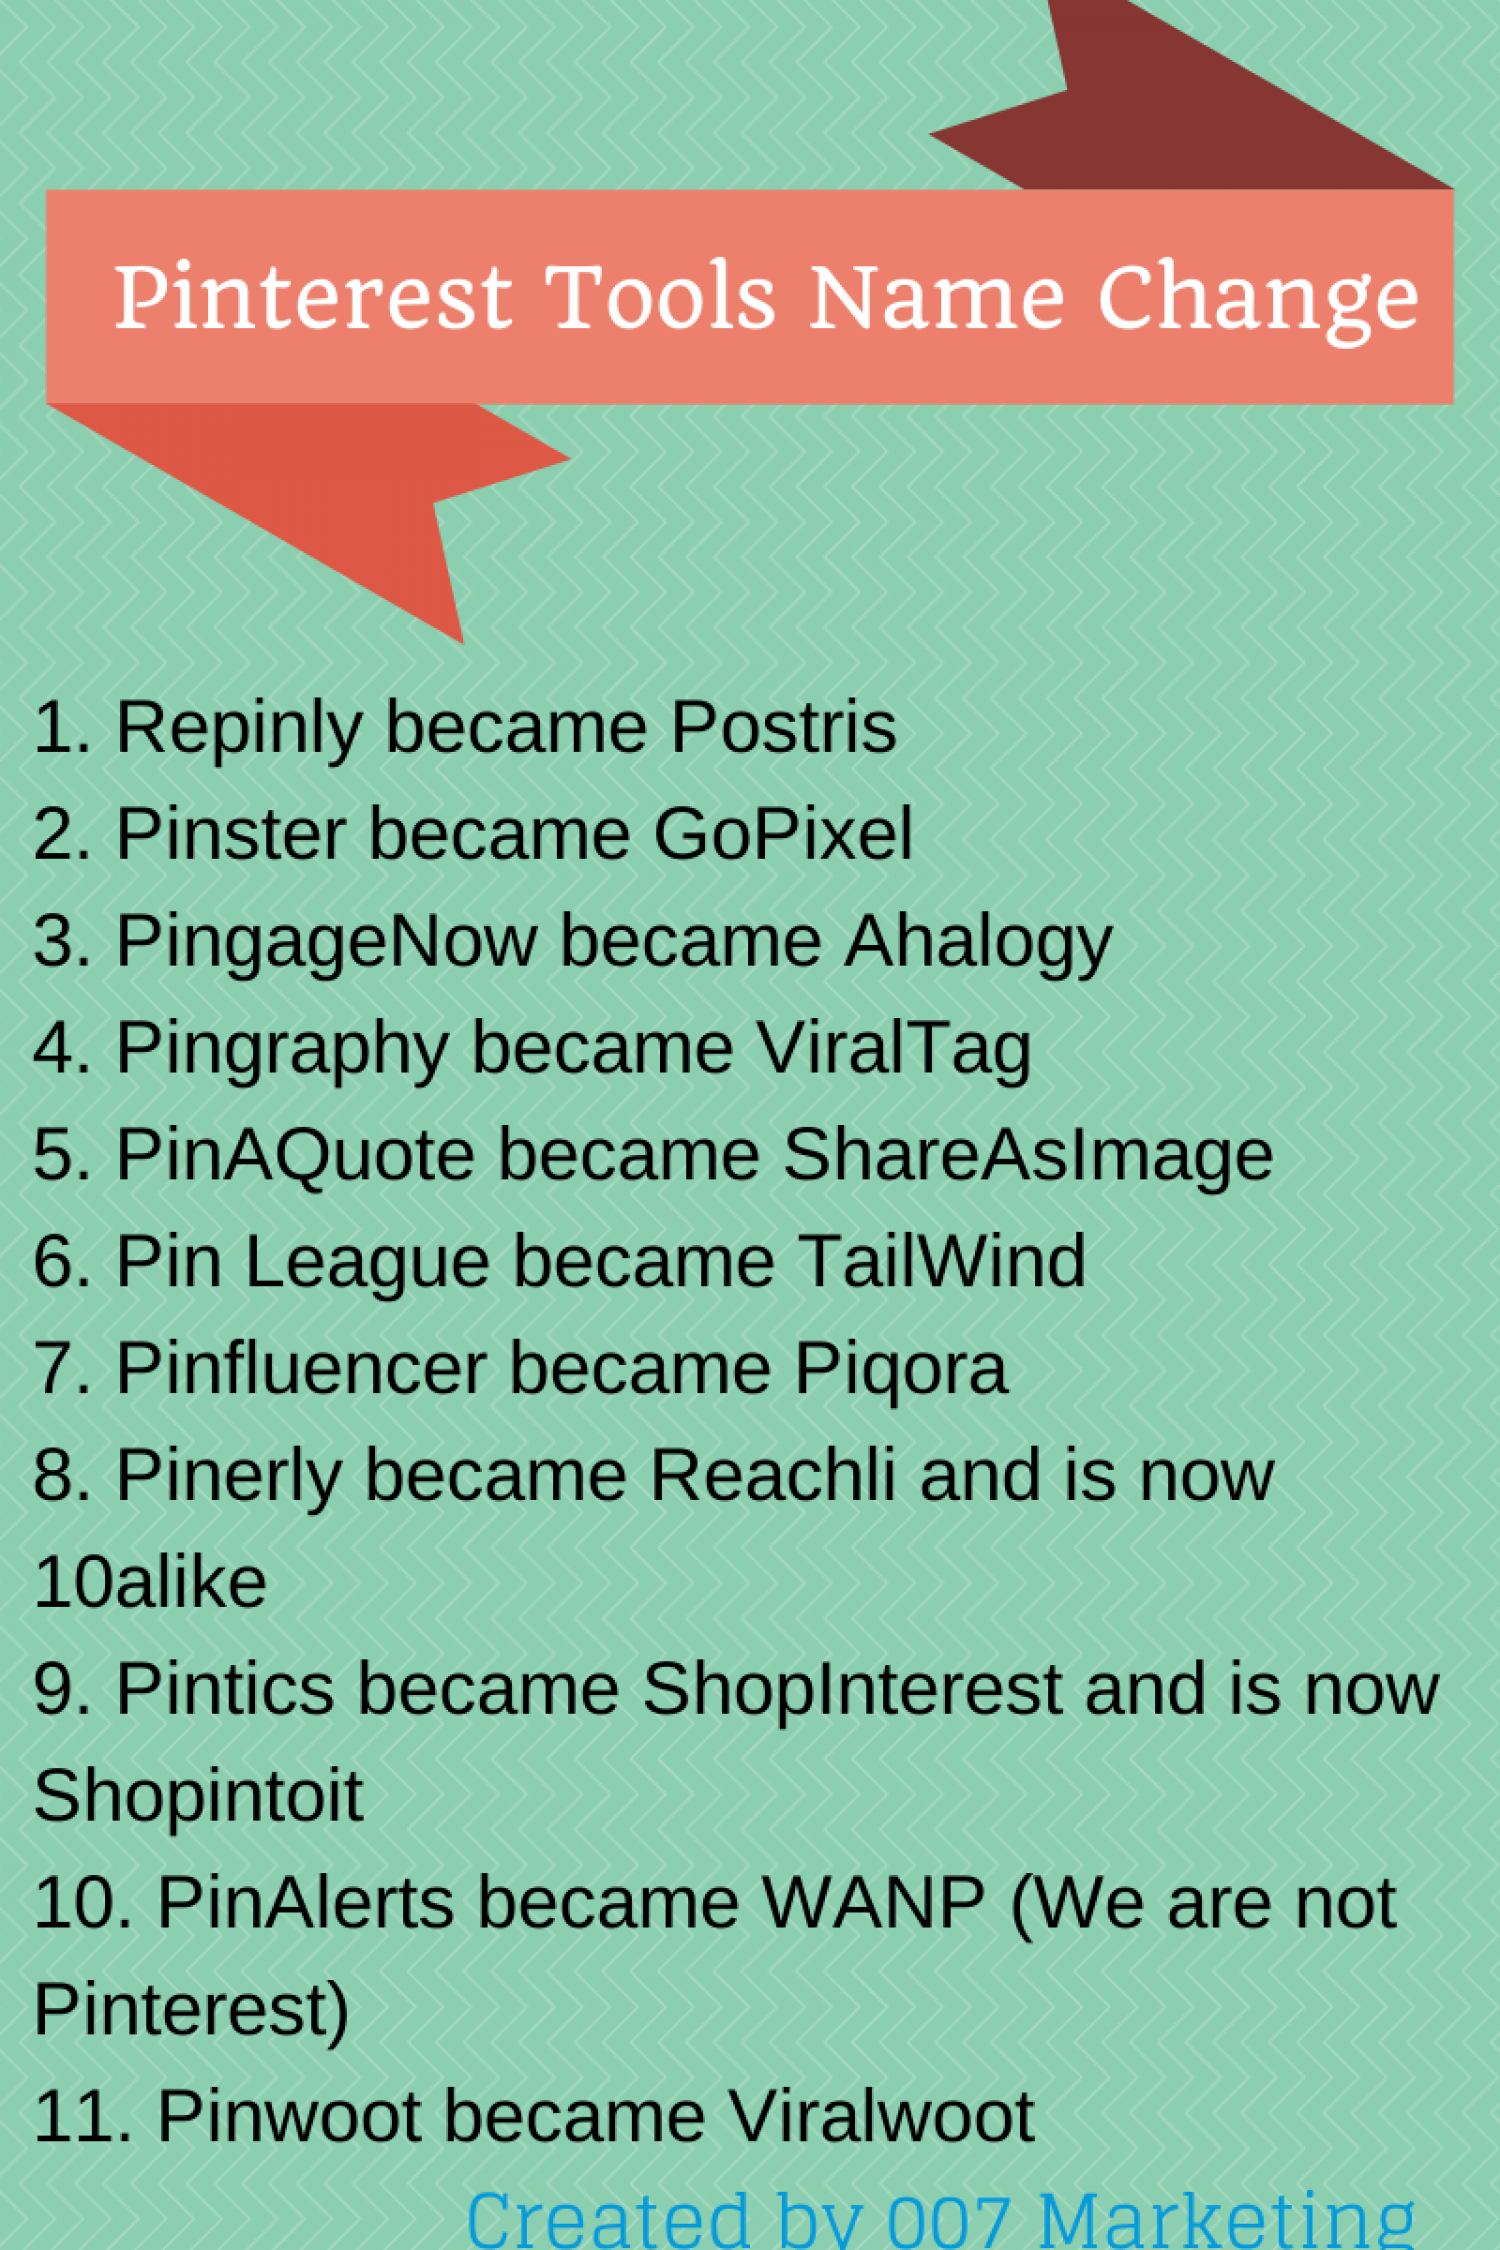 Pinterest Tools Name Change Infographic